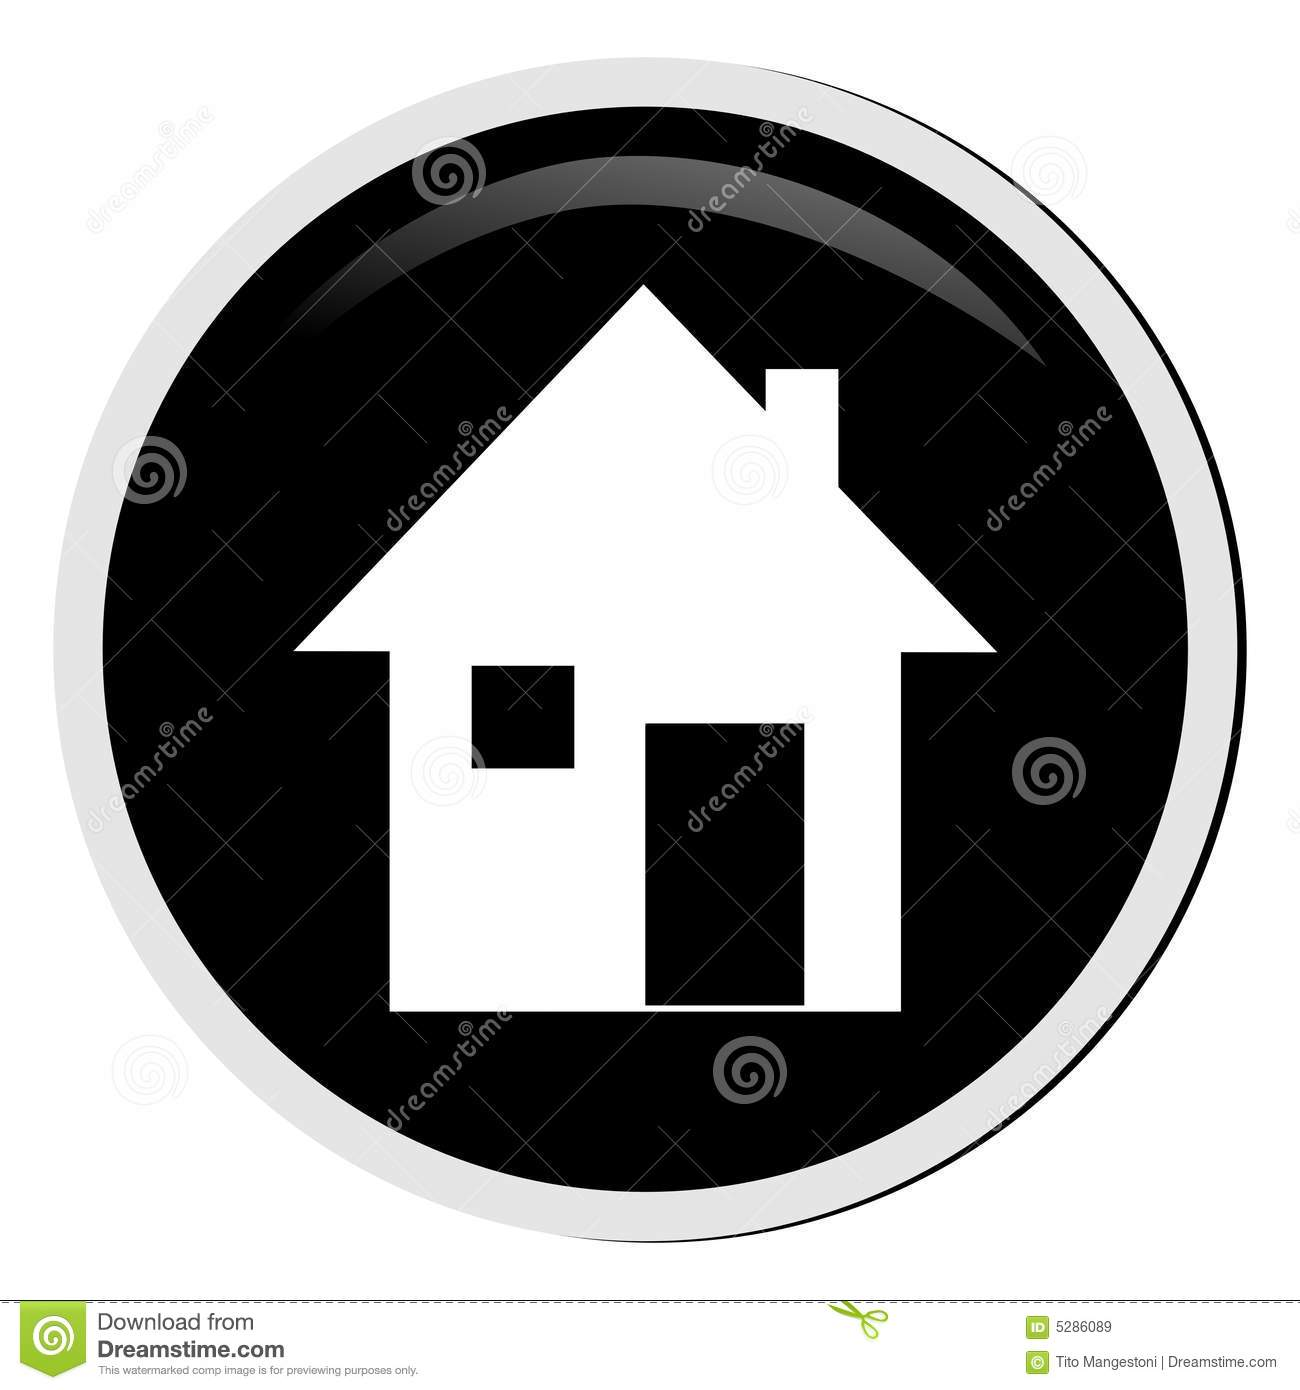 Red home button stock illustration. Illustration of